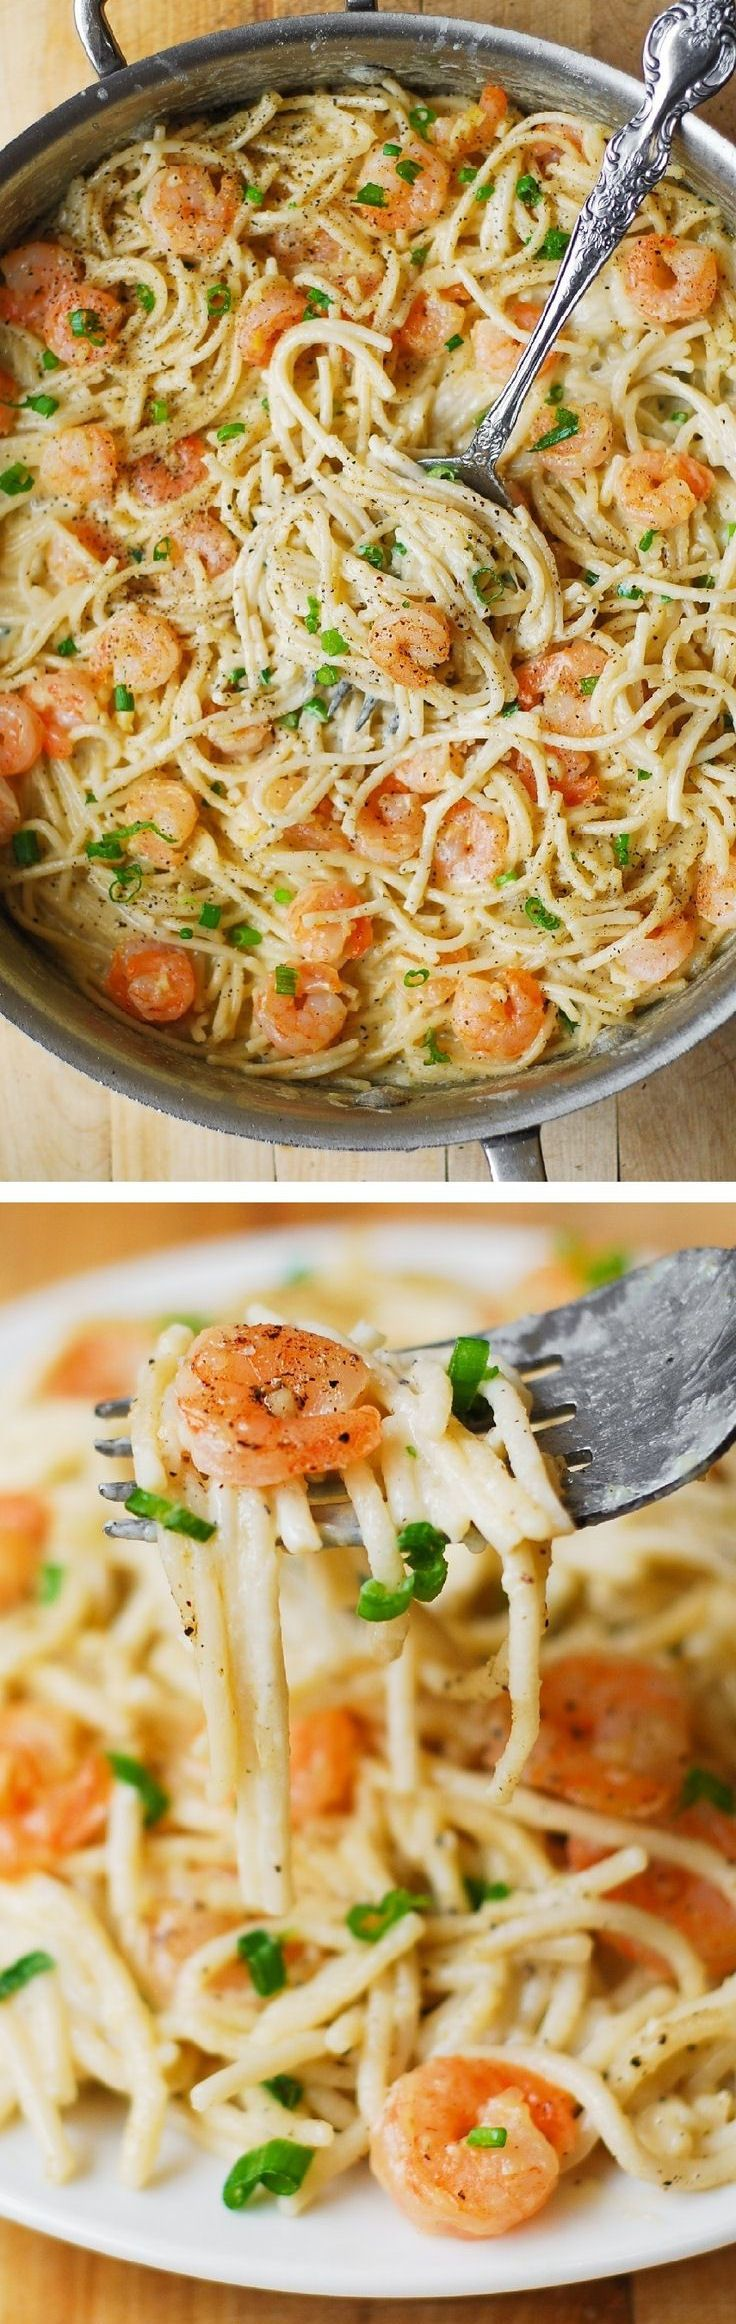 Garlic Shrimp Alfredo in a Creamy Four Cheese Pasta Sauce